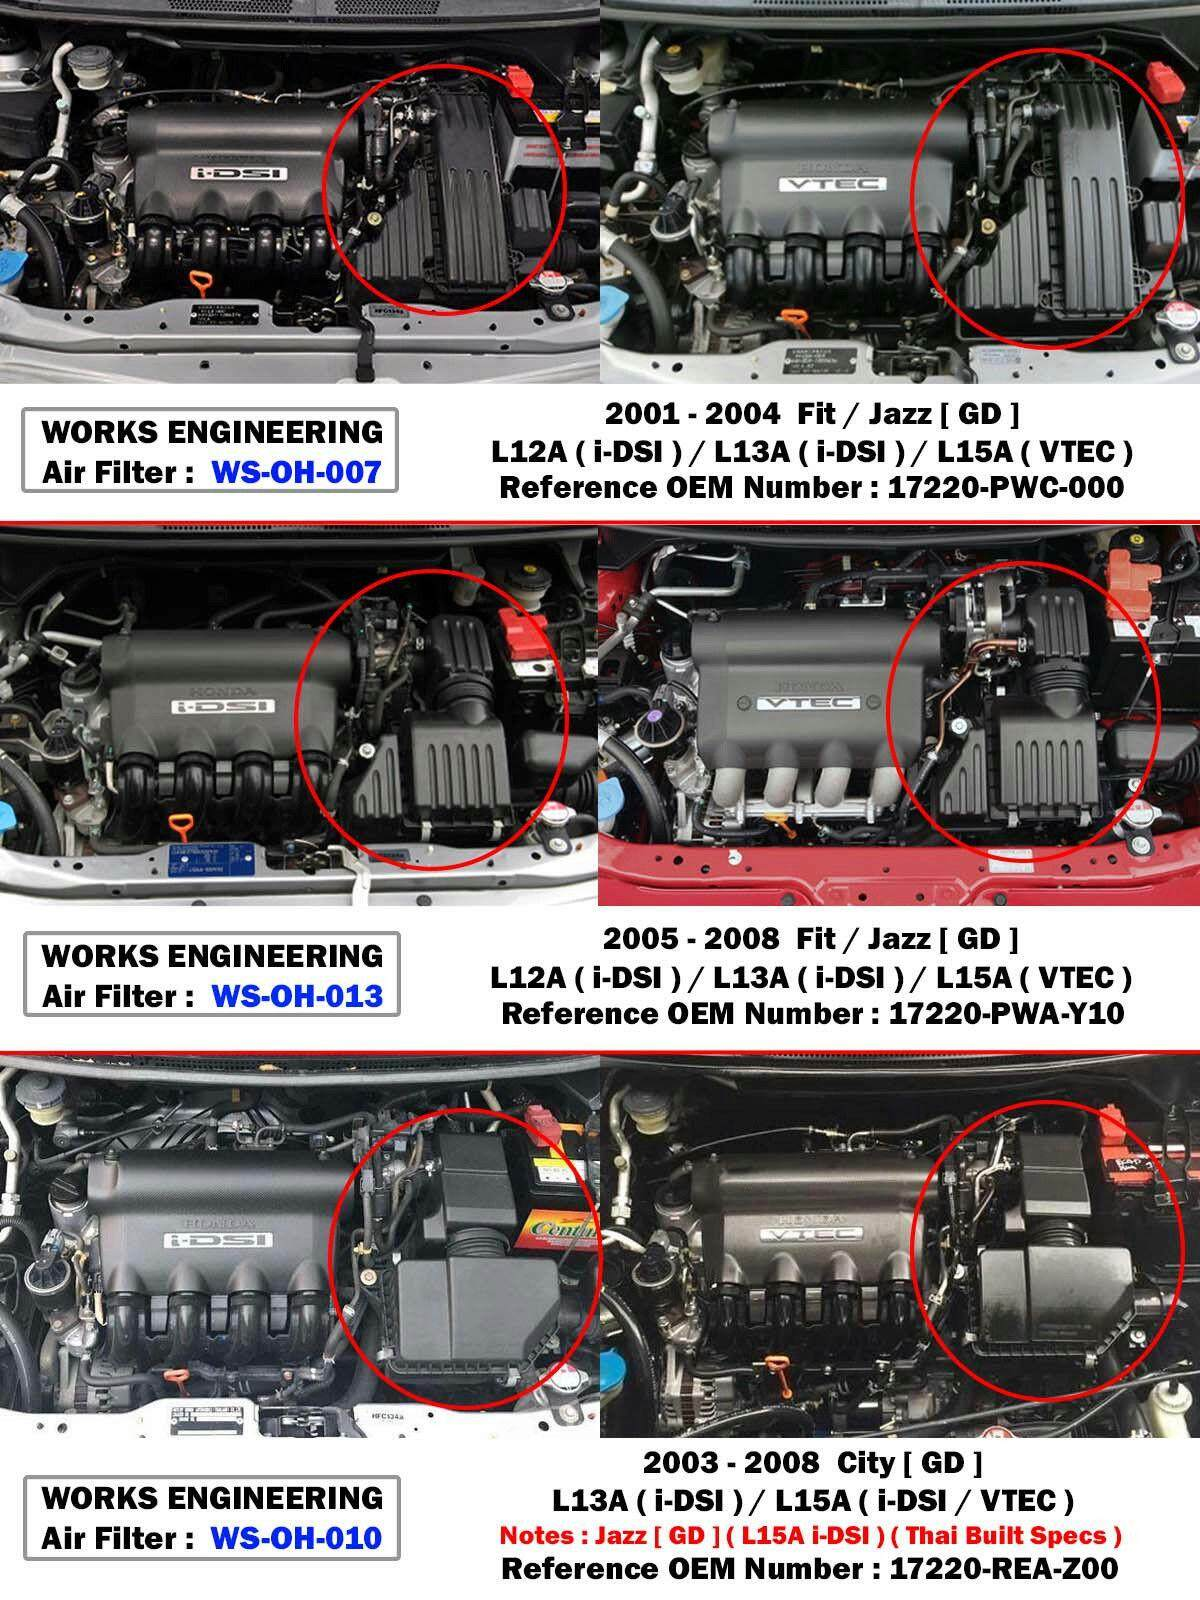 hight resolution of works high flow air filter for honda jazz fit gd1 gd3 gd5 1 2l 1 3l 1 5l 2005 08